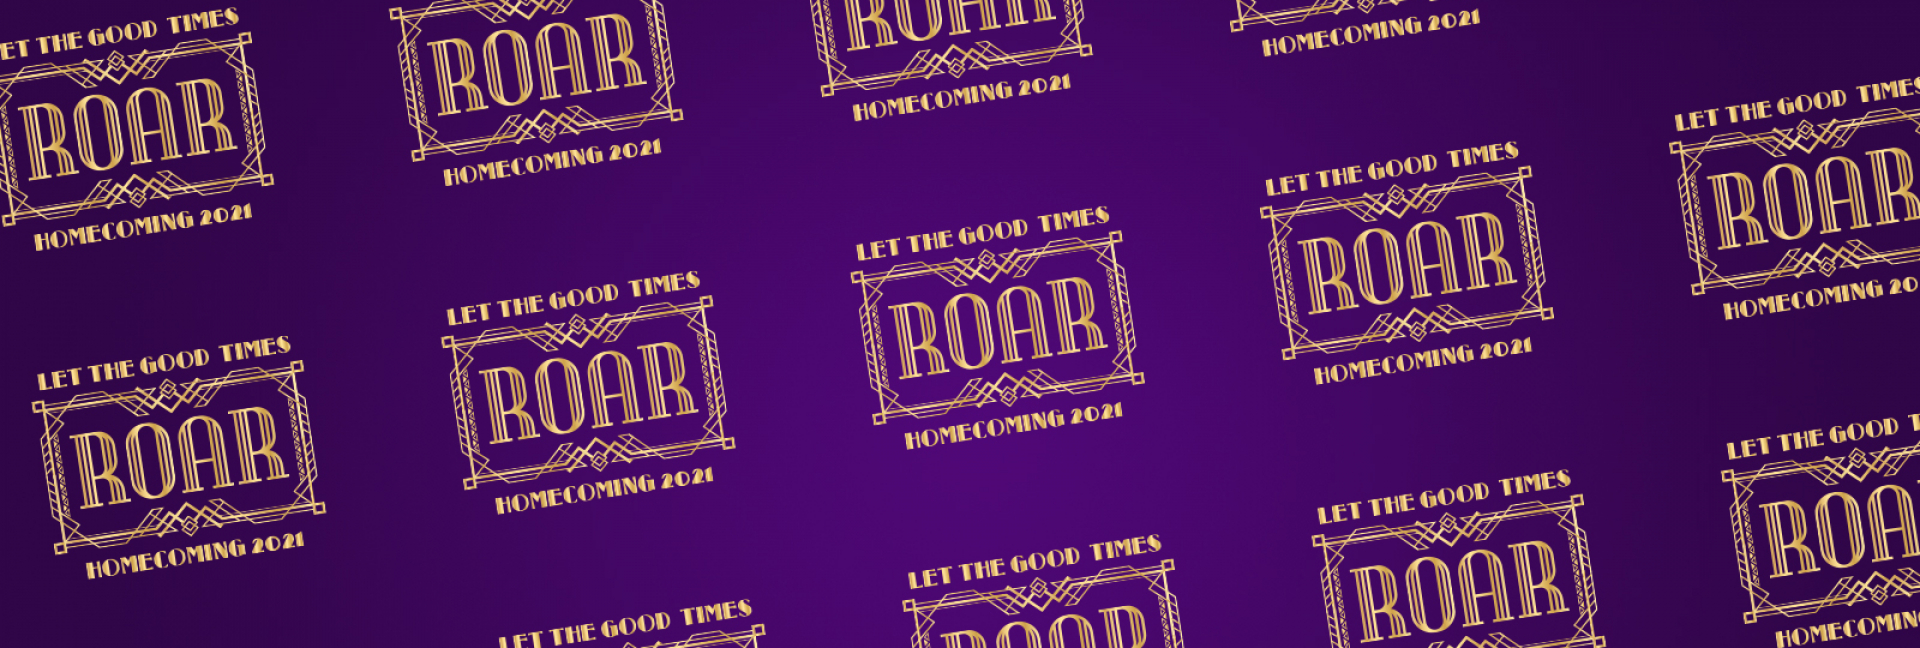 Repeating logo Let the Good Times Roar - Homecoming 2021